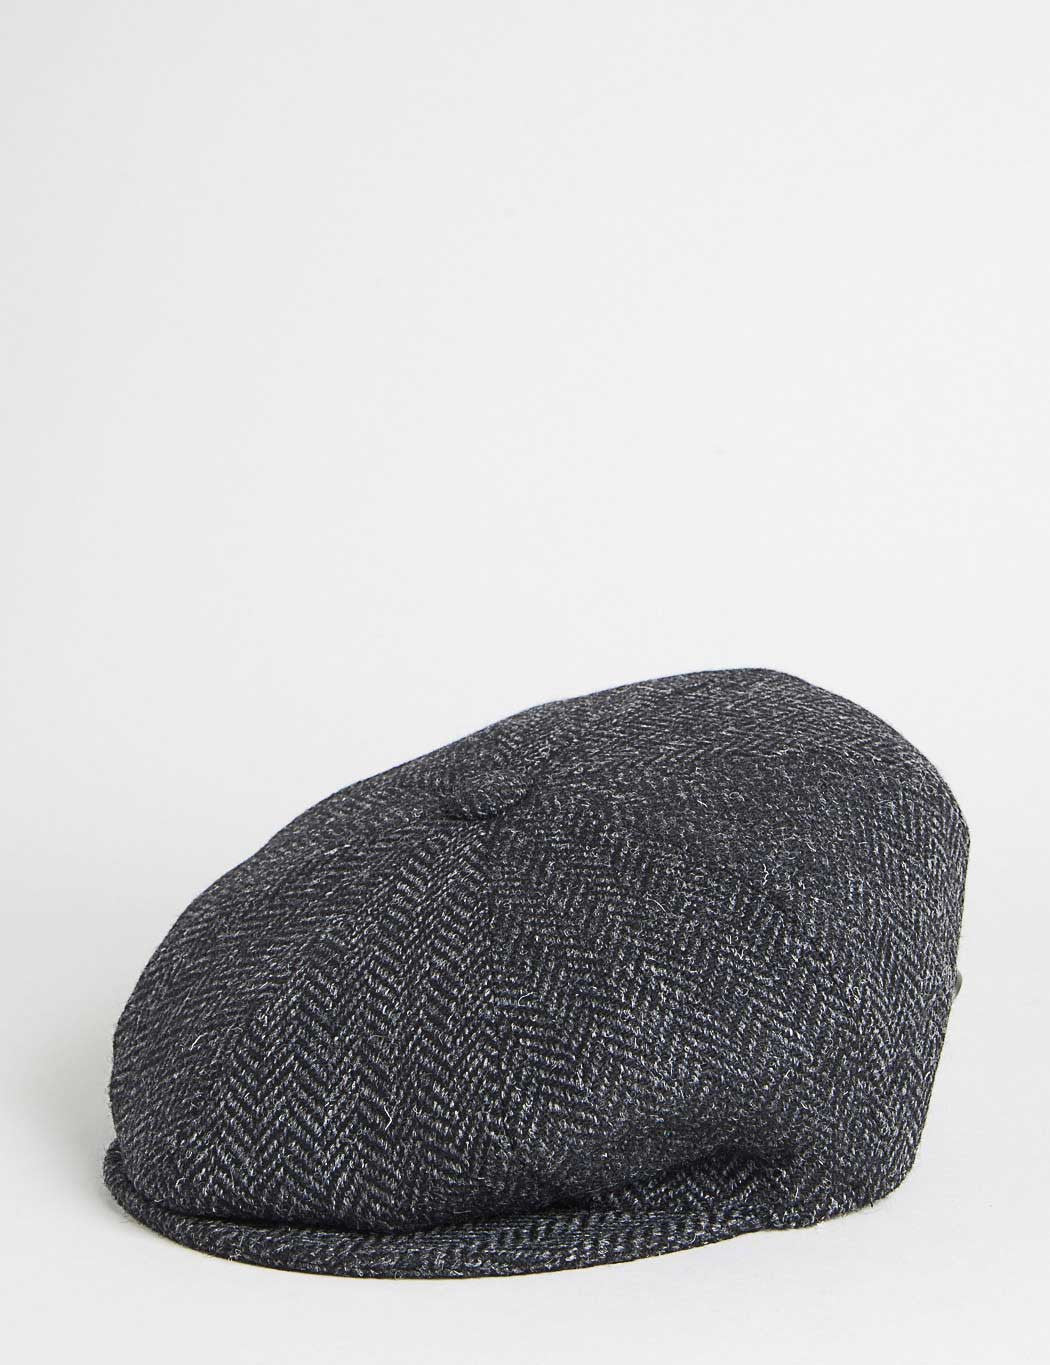 Bailey Galvin Herringbone Newsboy Cap - Black/Grey